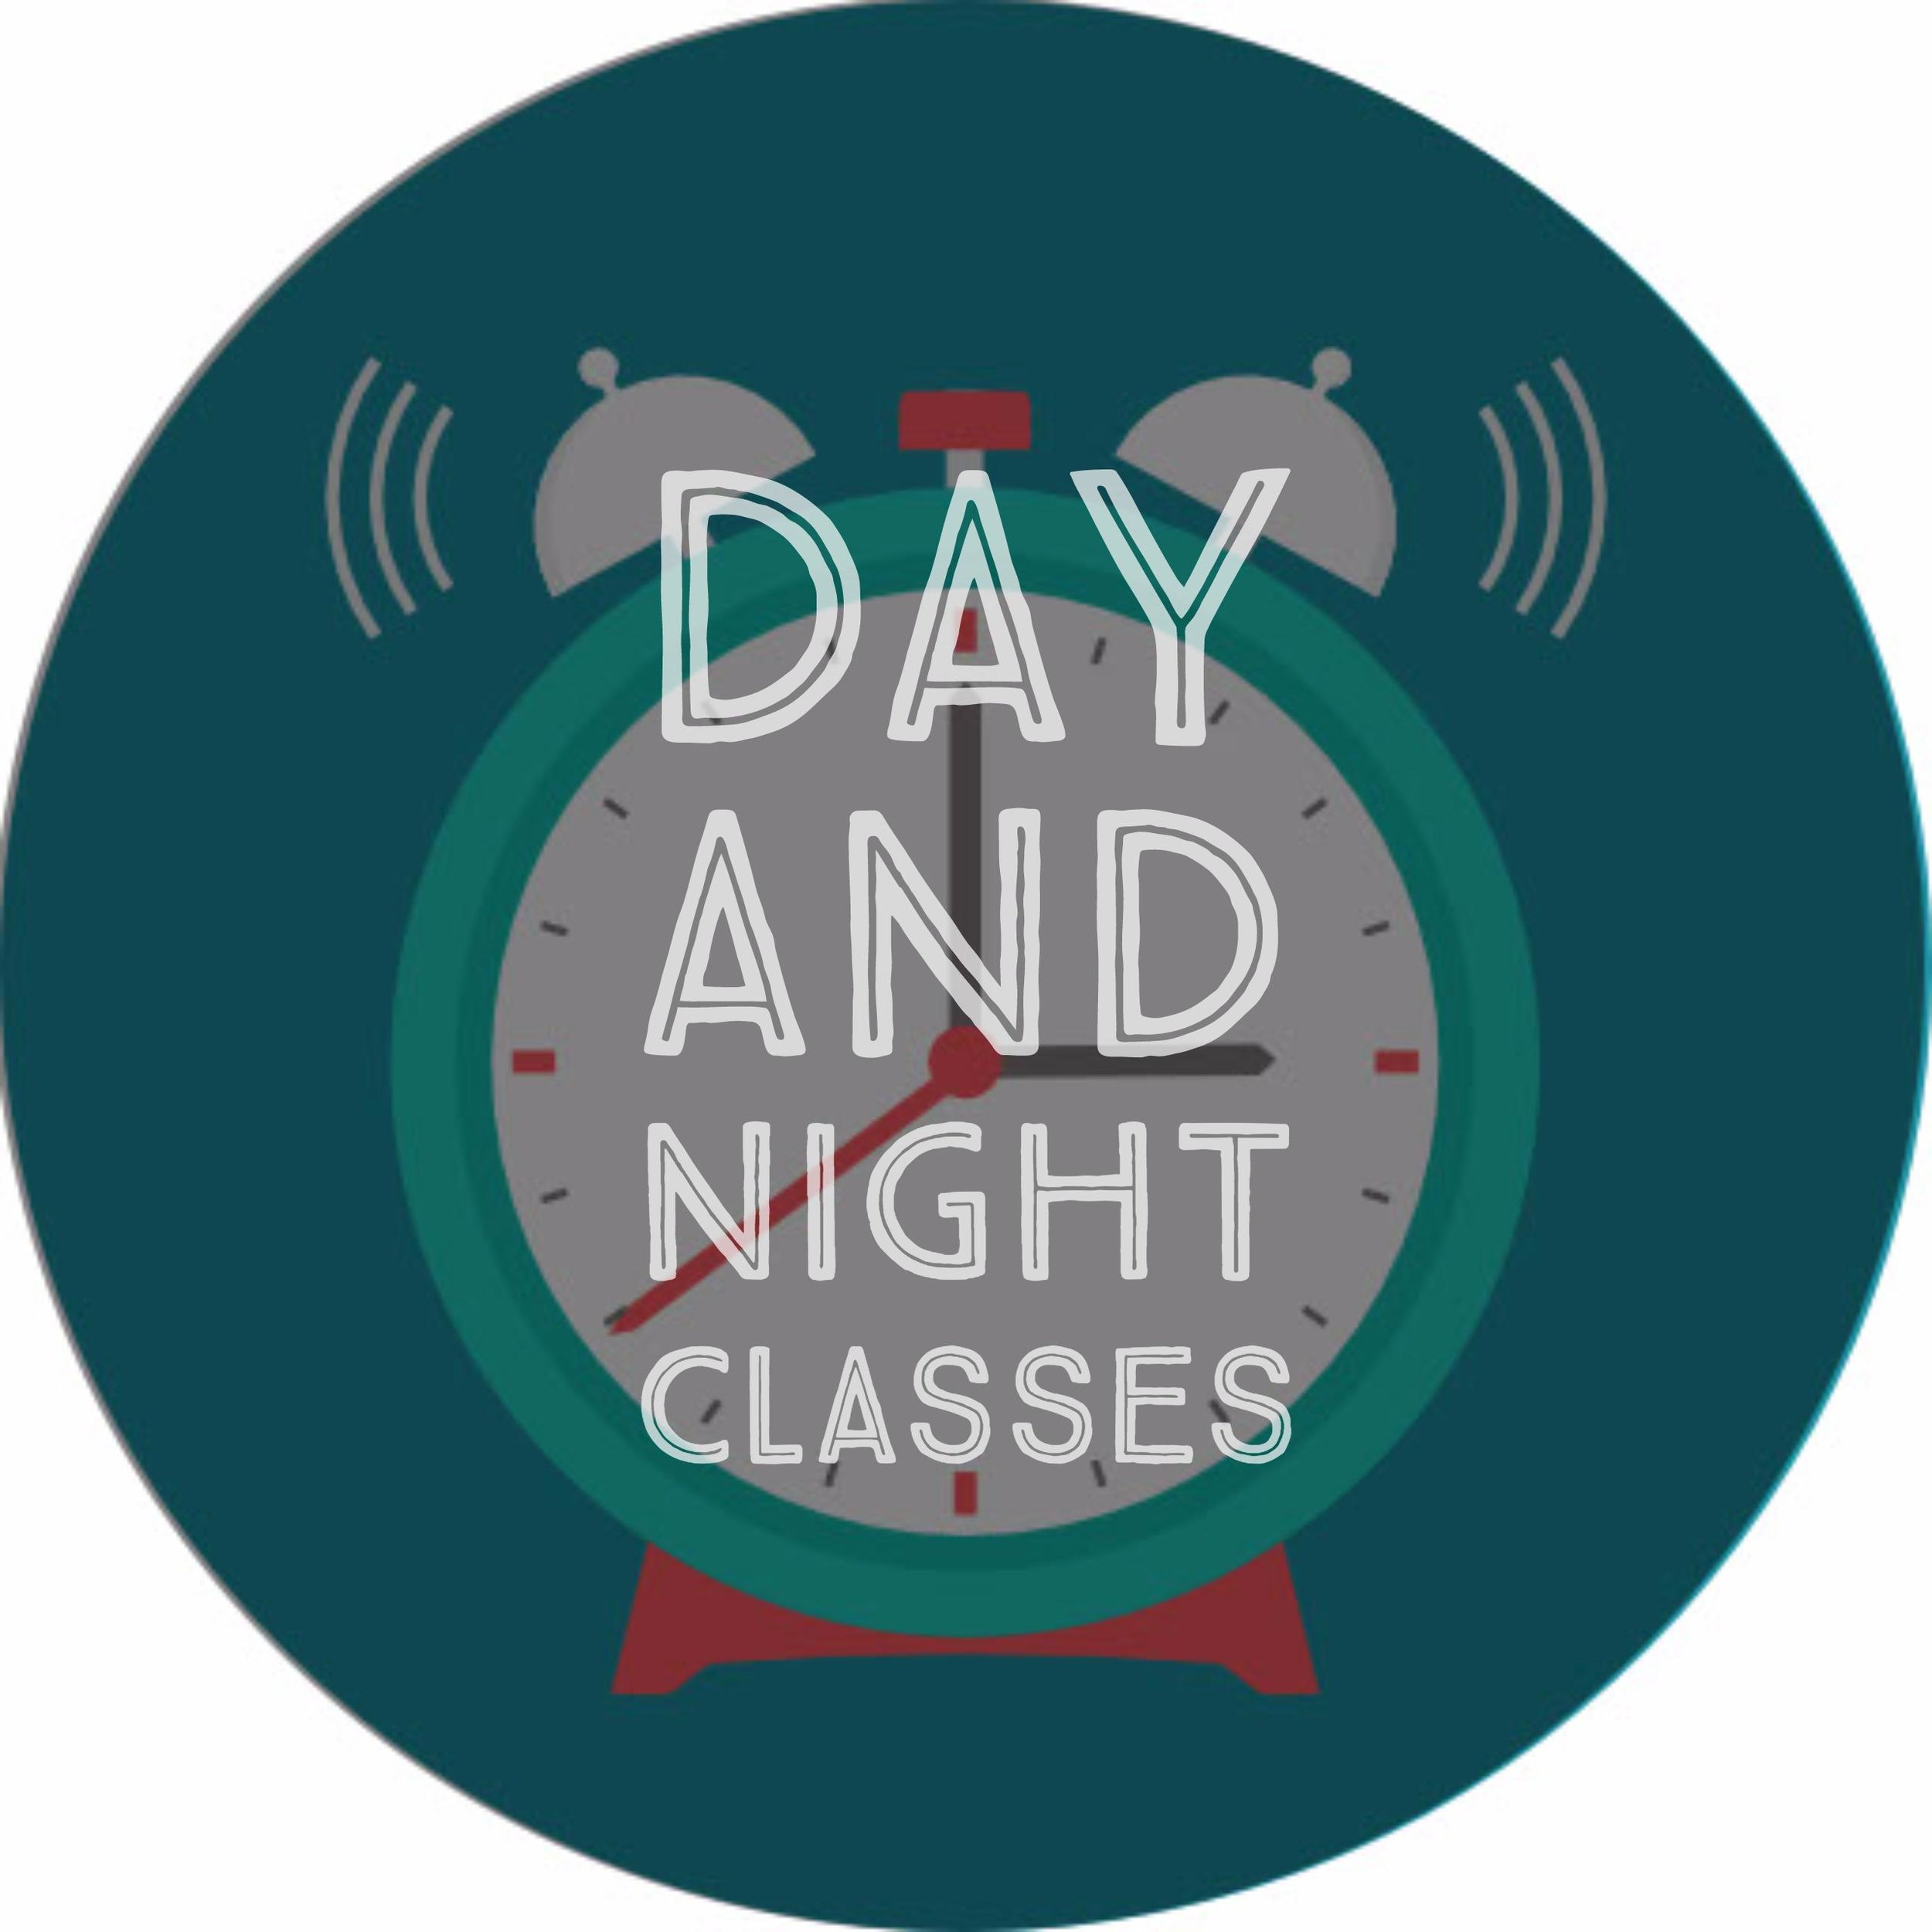 Convenient Day and Evening Classes to Fit Your Schedule